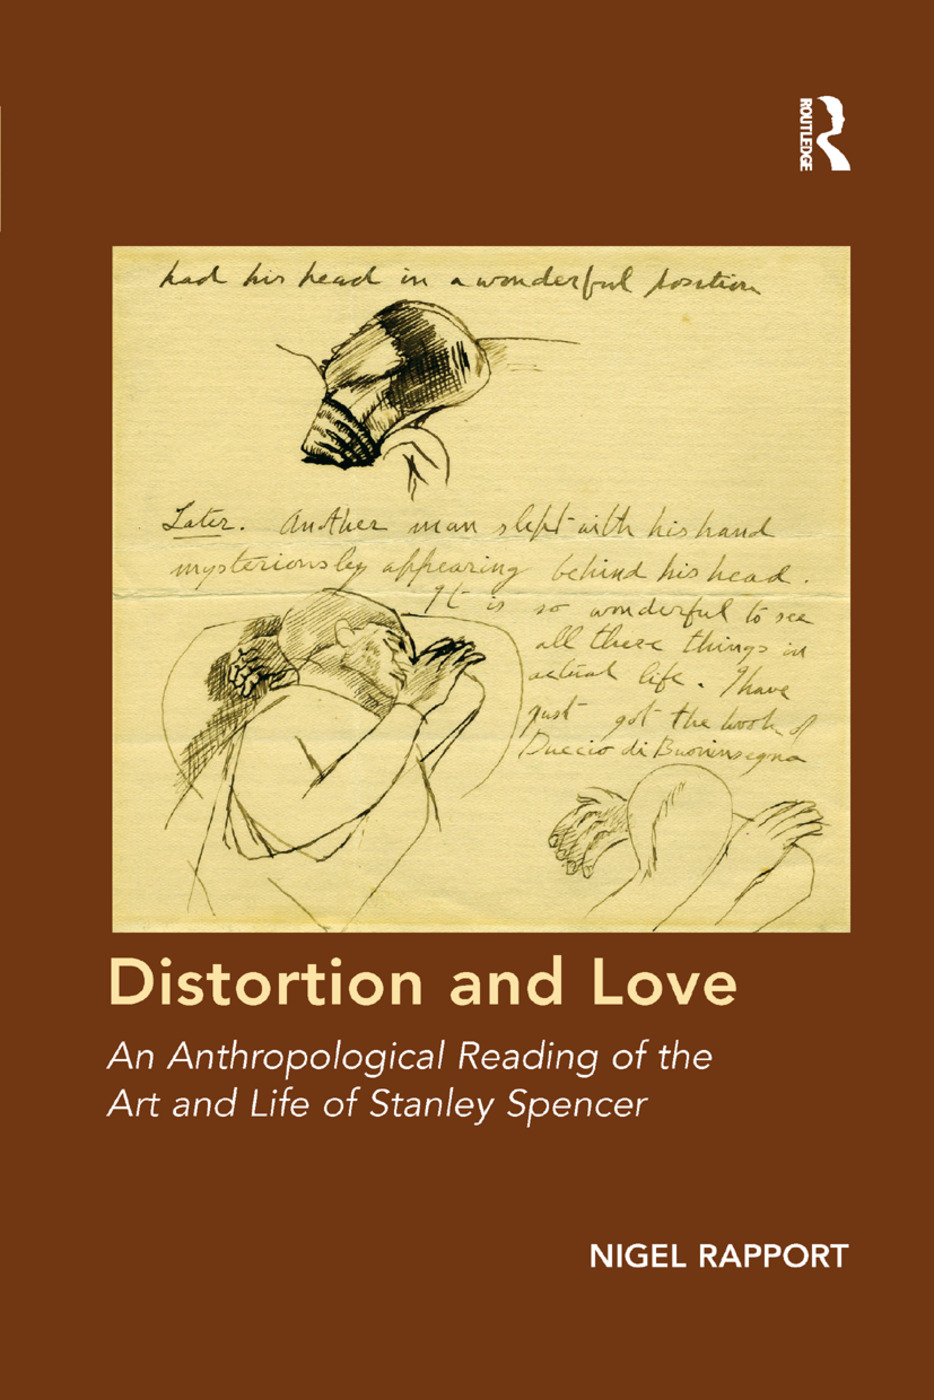 Distortion and Love: An Anthropological Reading of the Art and Life of Stanley Spencer book cover